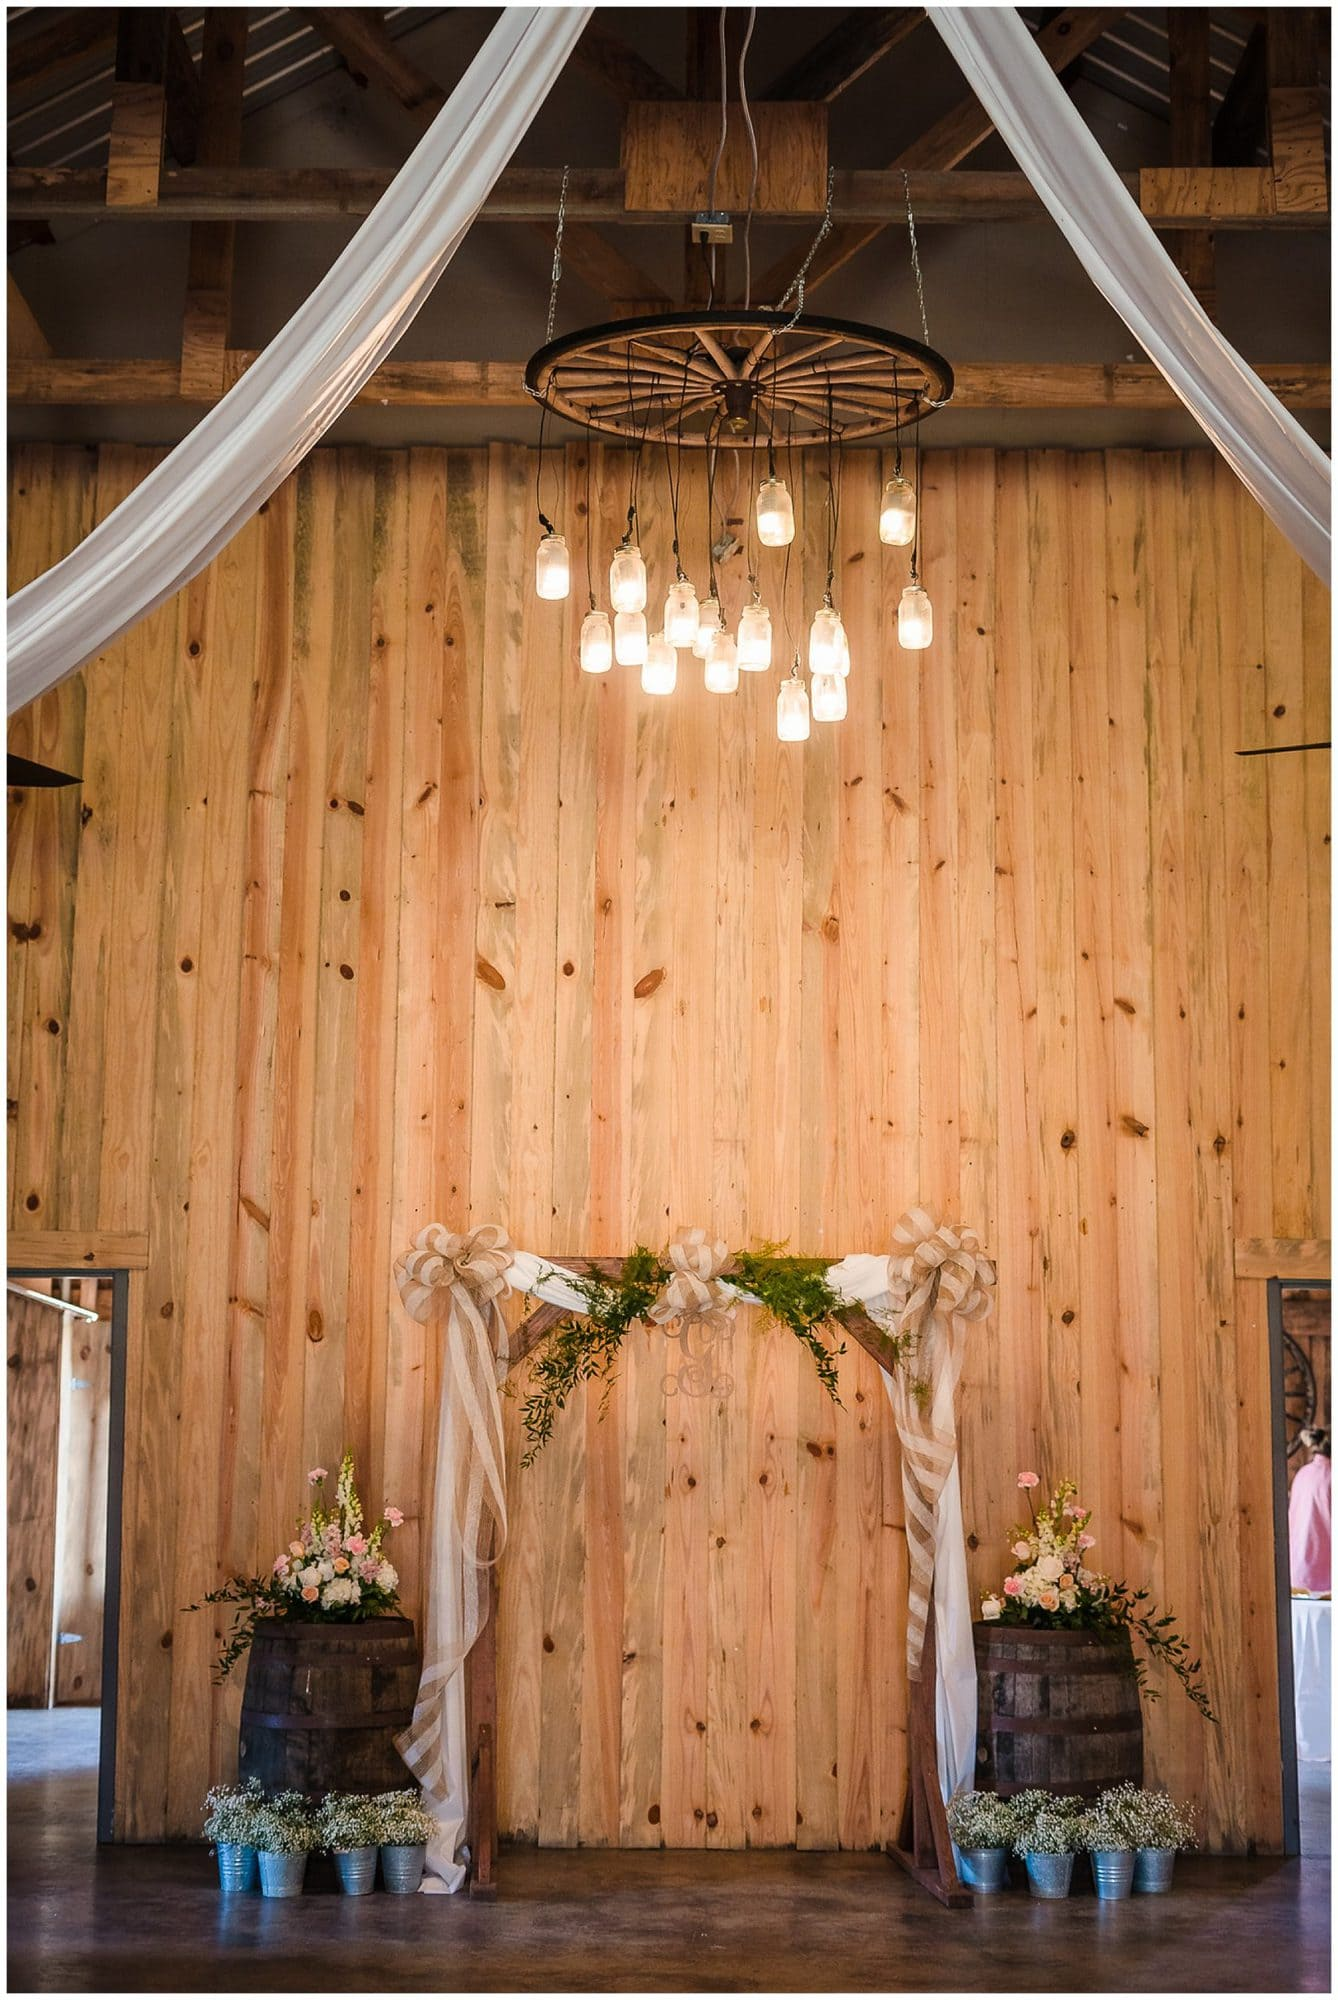 The Barn at TH Farm ceremony location